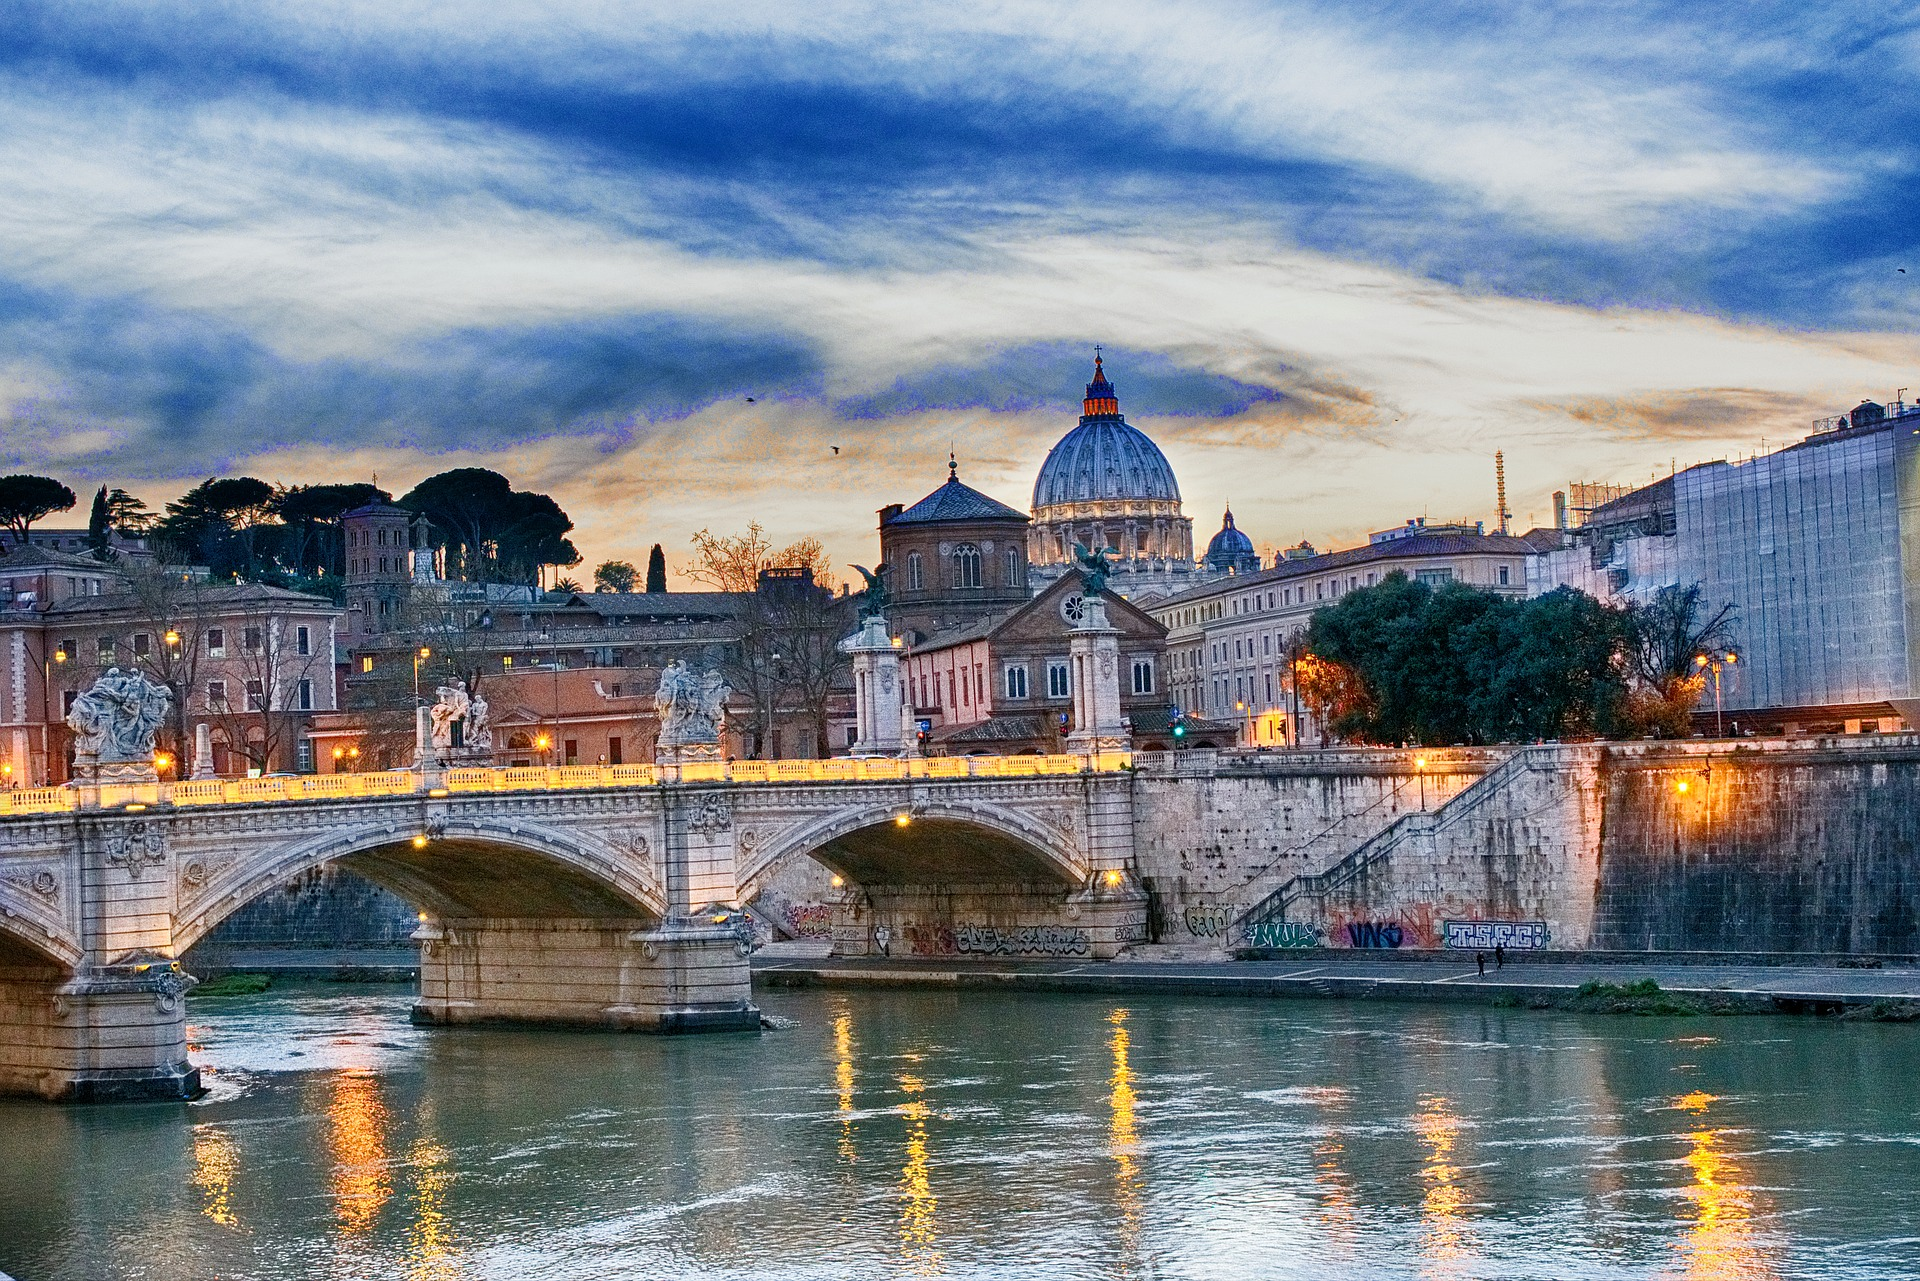 Ponte Sant'Angelo bridge in Rome